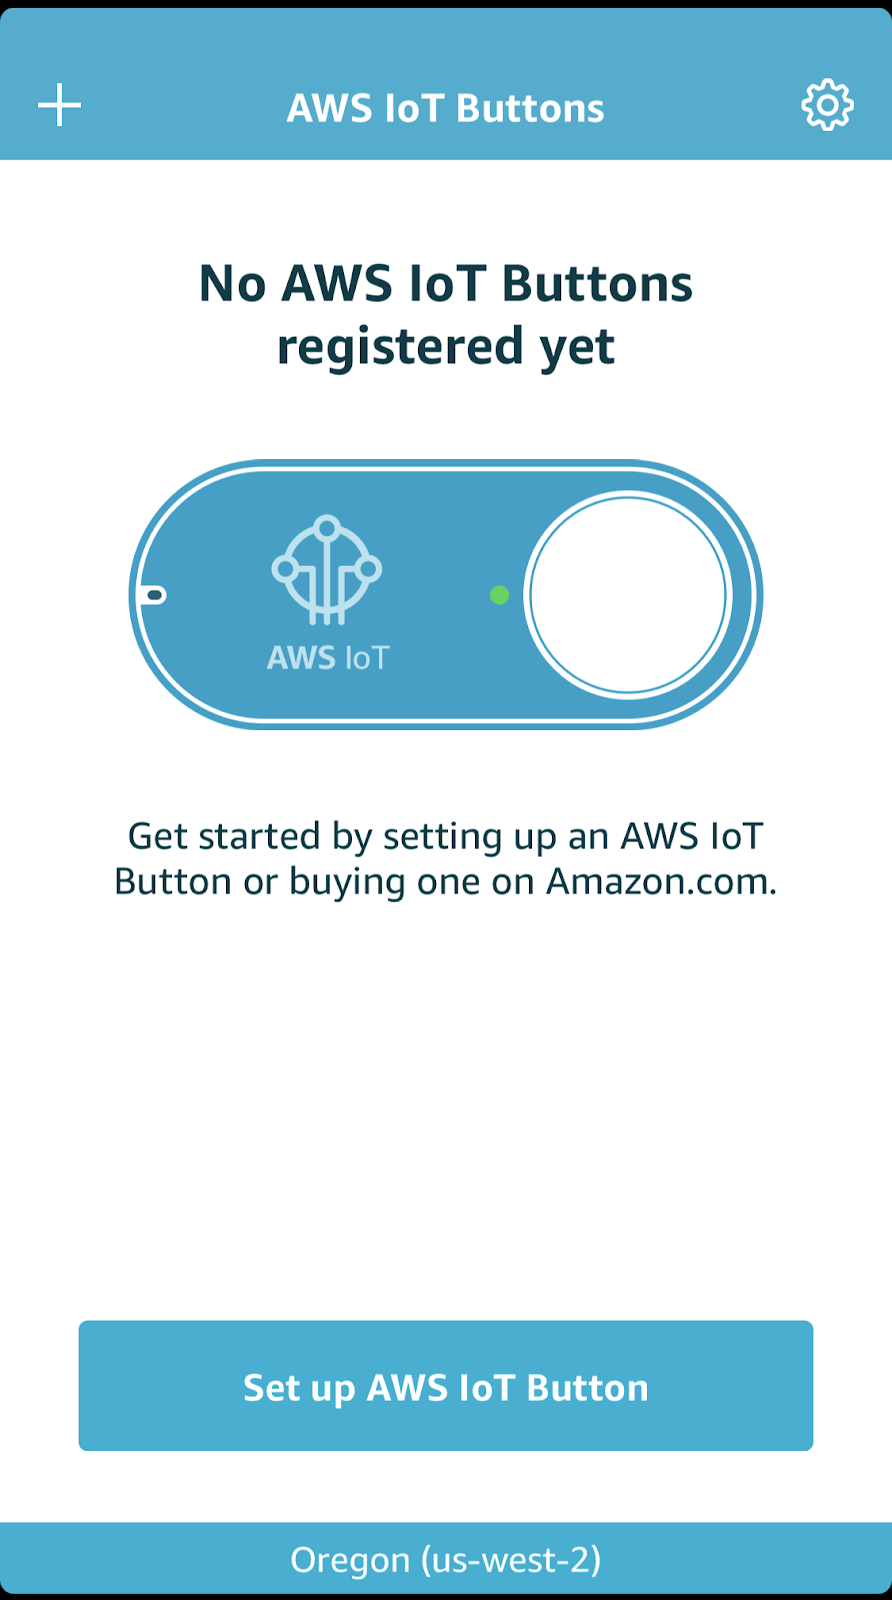 iOS Native App to register IoT Button